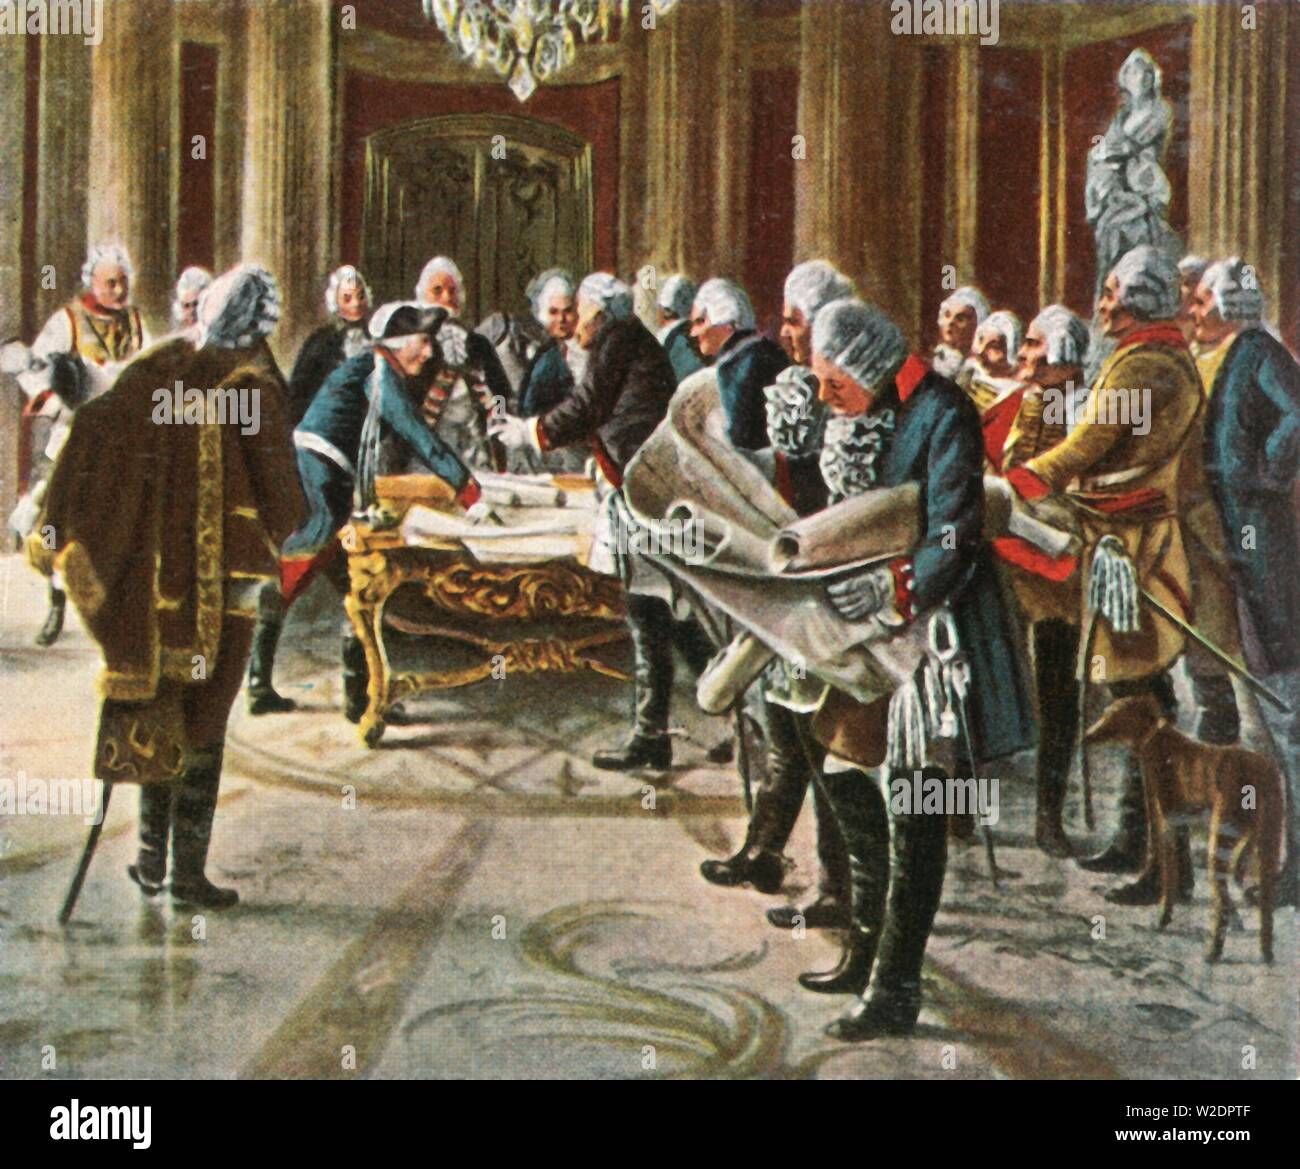 """Frederick the Great holds a council of war with his generals, August 1756, (1936). 'Friedrich Der Grosse Hält Kriegsrat Mit Seinen Generalen, August 1756'. King Frederick the Great of Prussia (1712-1786) discusses strategy with his military advisors at his palace of Sanssouci in Potsdam, Germany. From """"Bilder Deutscher Geschichte"""", (Pictures of German History), No.12, cigarette card album. [Cigaretten-Bilderdienst, Altona-Bahrenfeld, Hamburg, Germany, 1936] - Stock Image"""